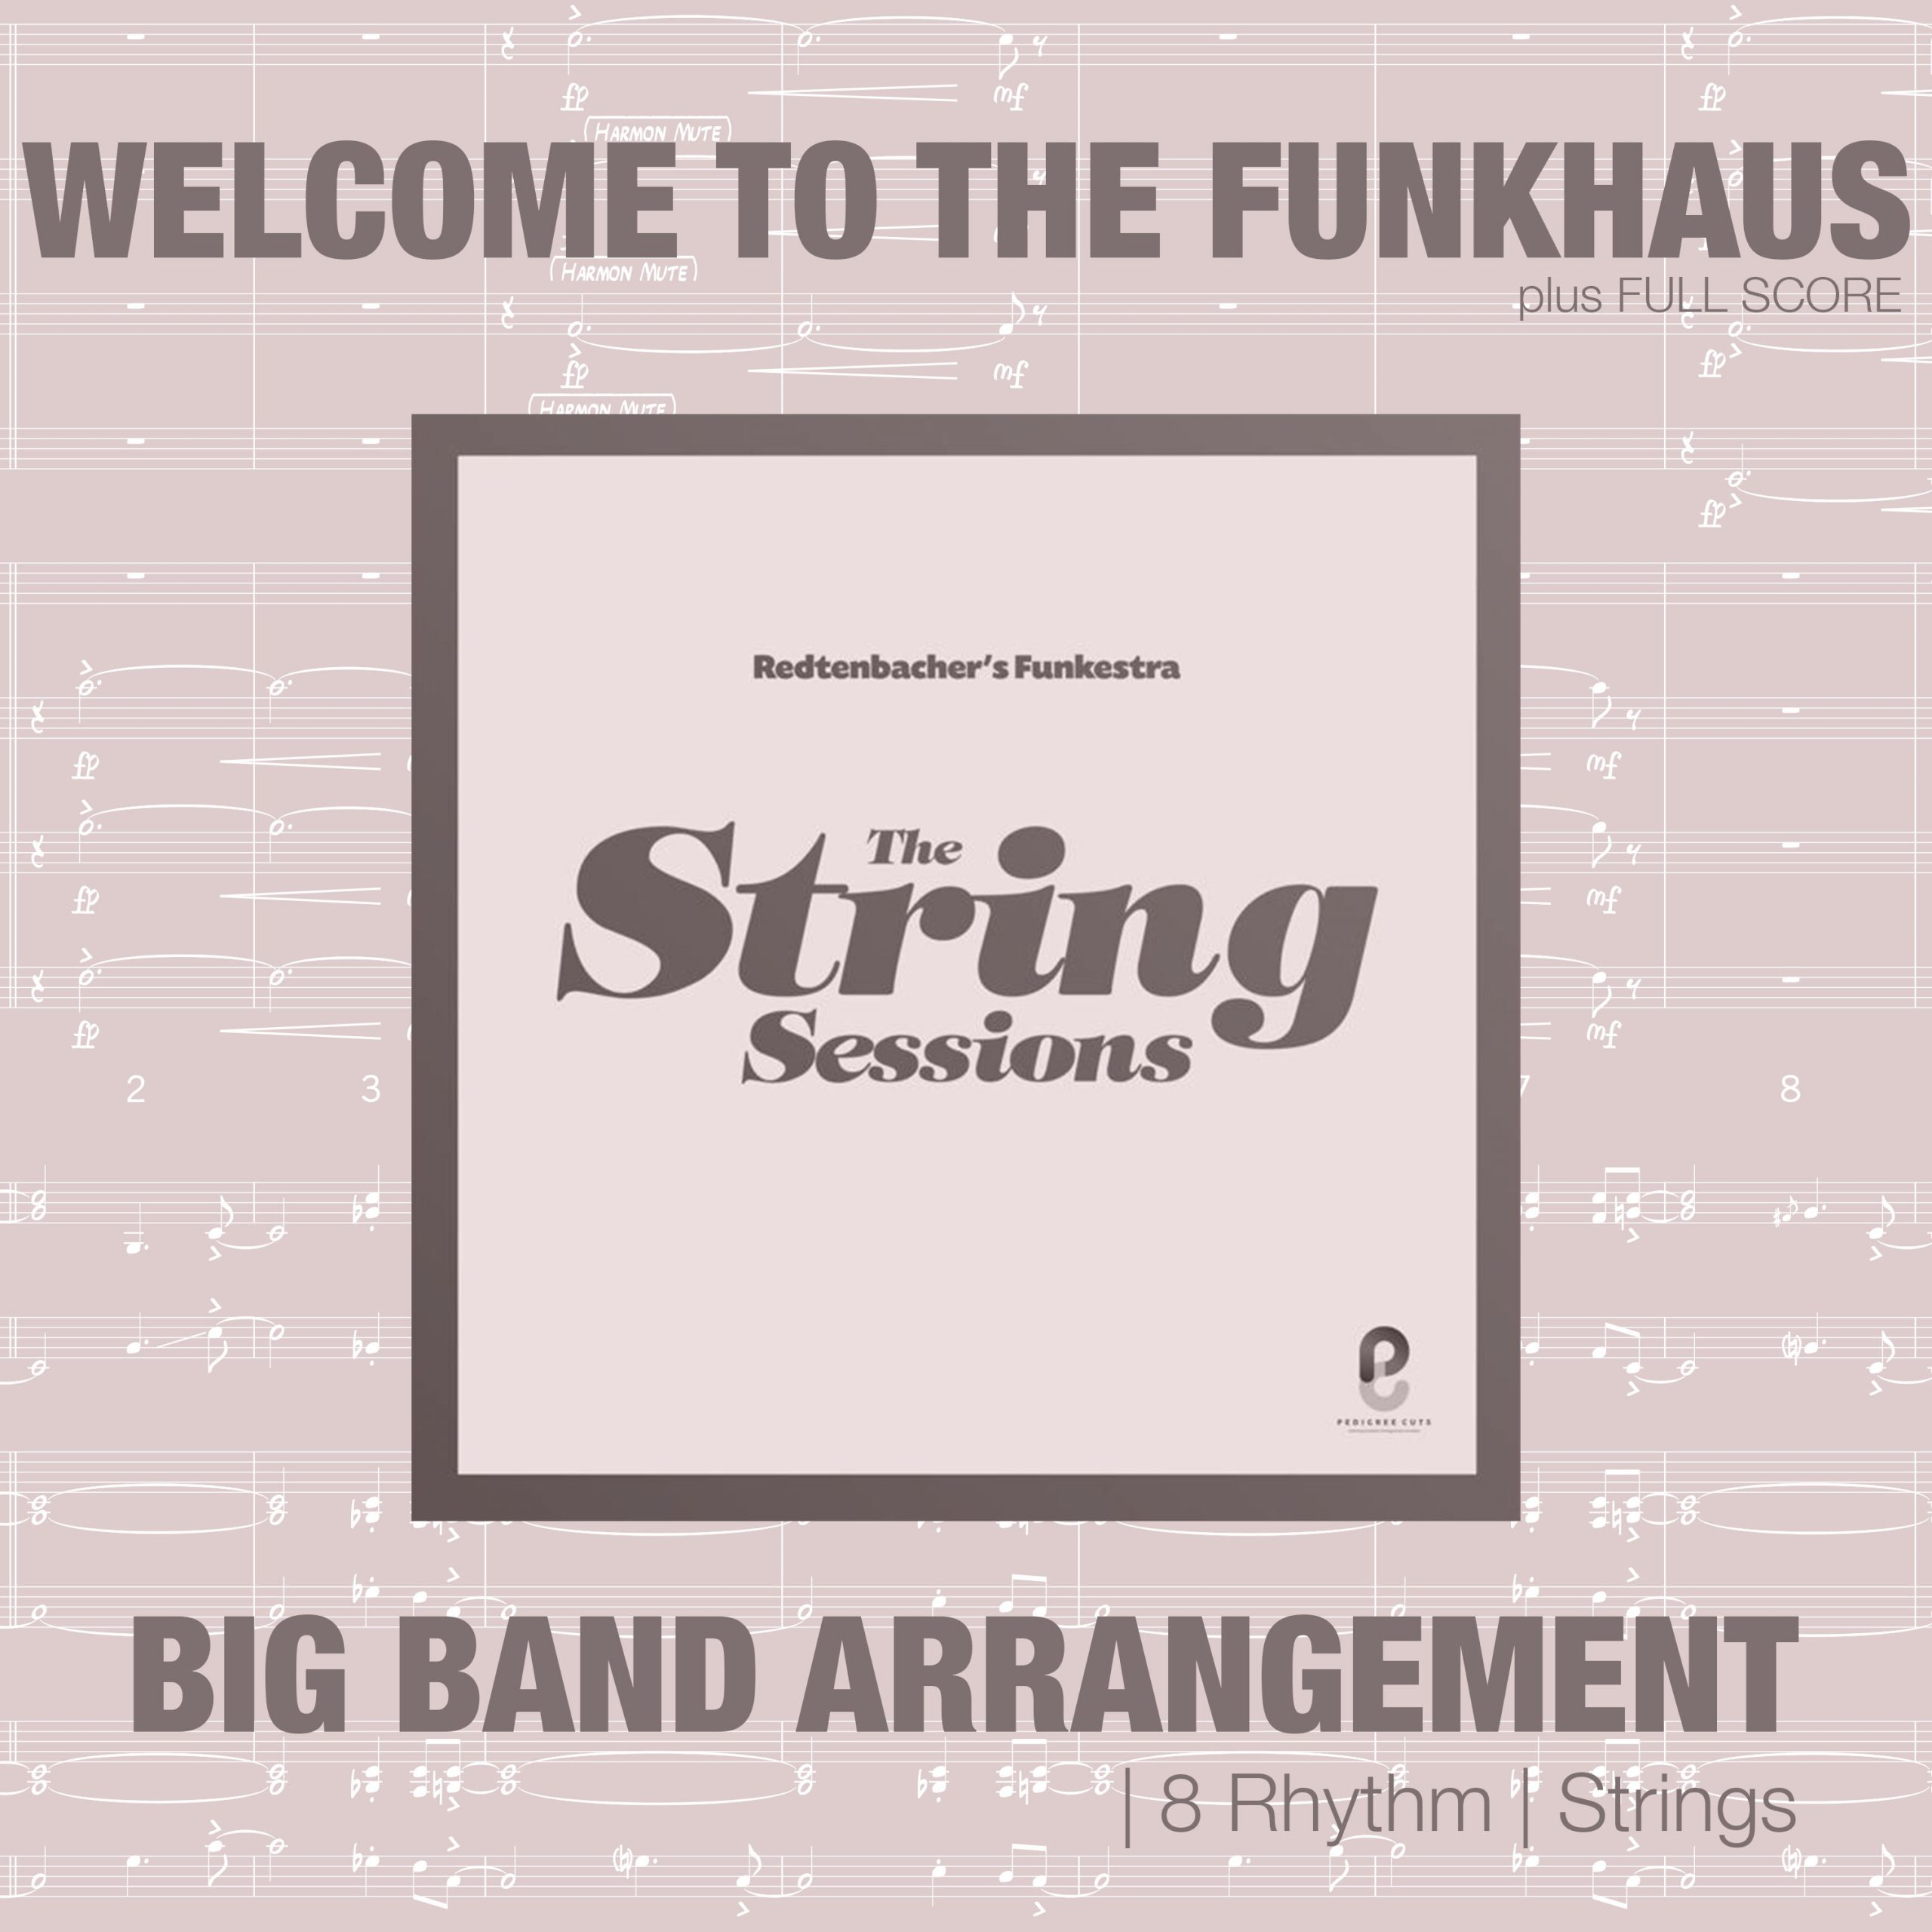 Welcom To The Funkhaus | Strings & Rhythm Section Arrangement